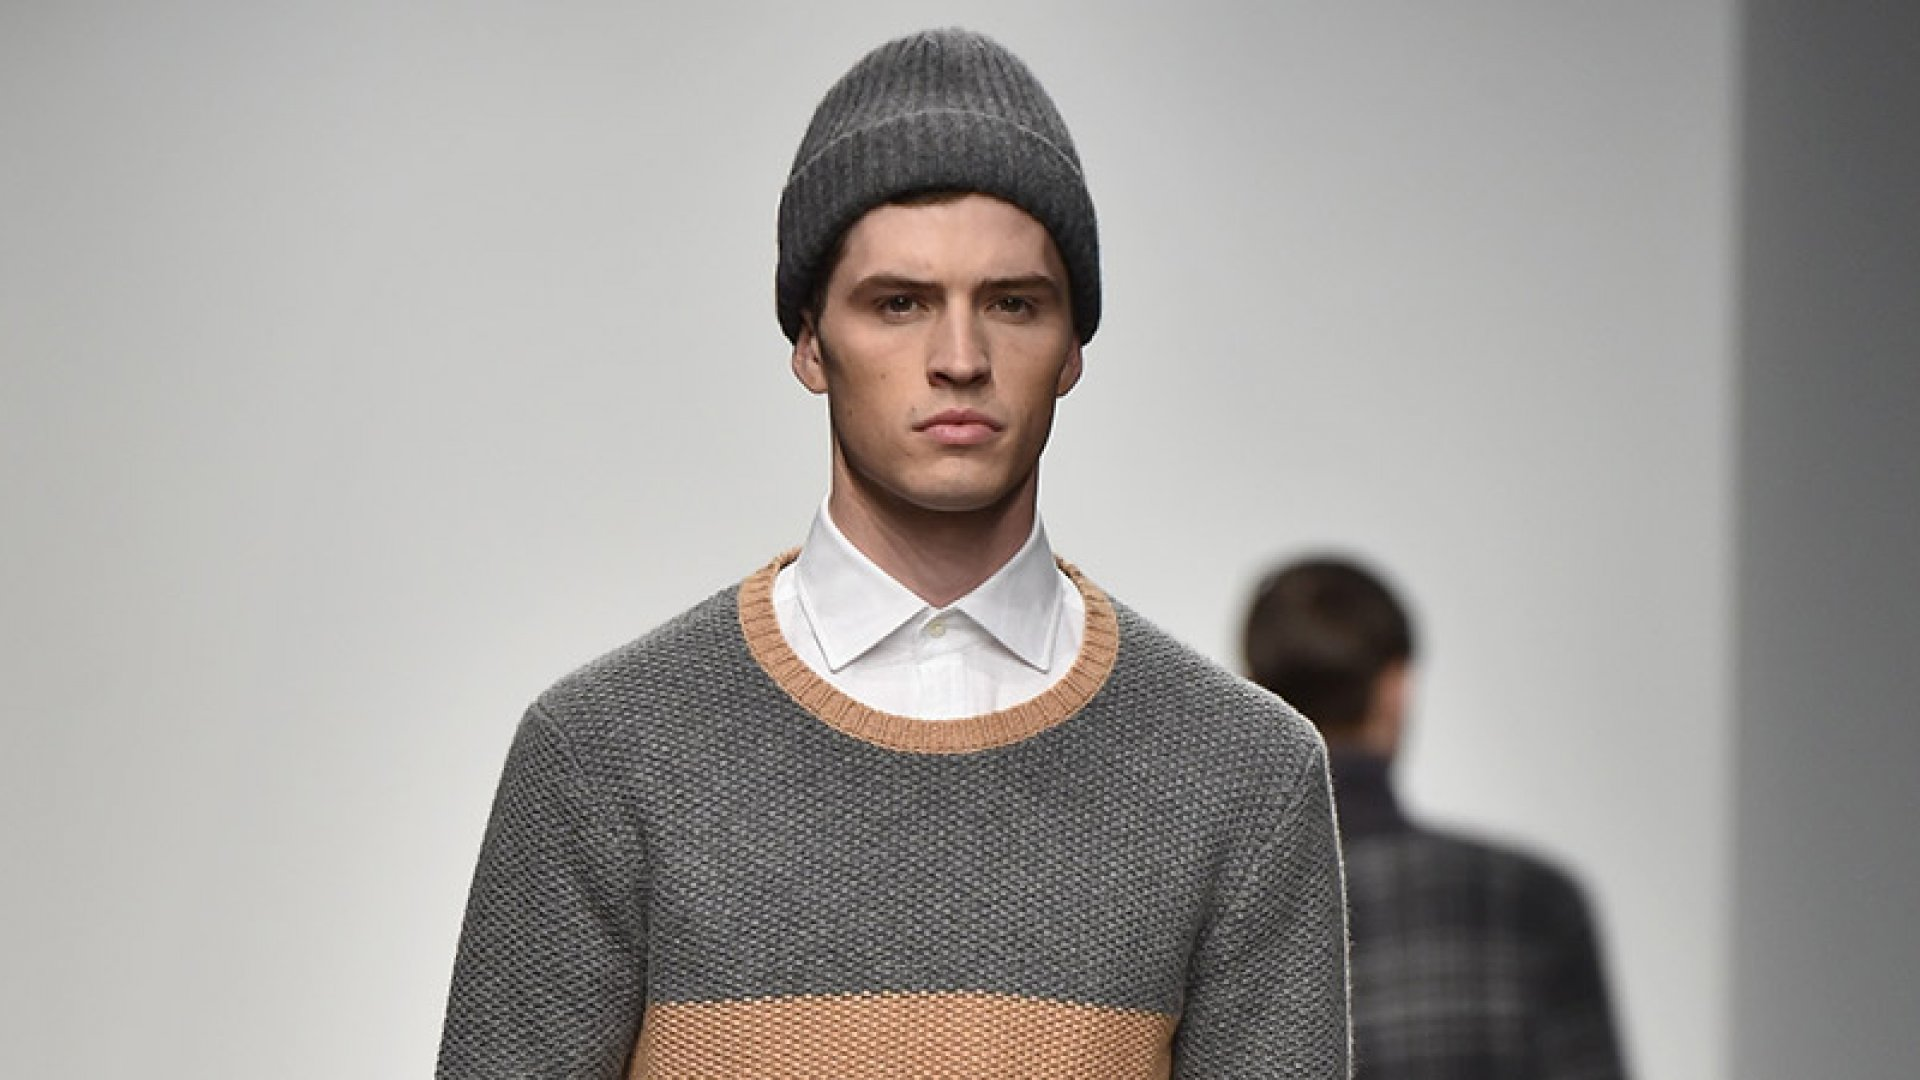 A model wearing a beanie at the Ovadia and Sons show during New York Fashion Week.